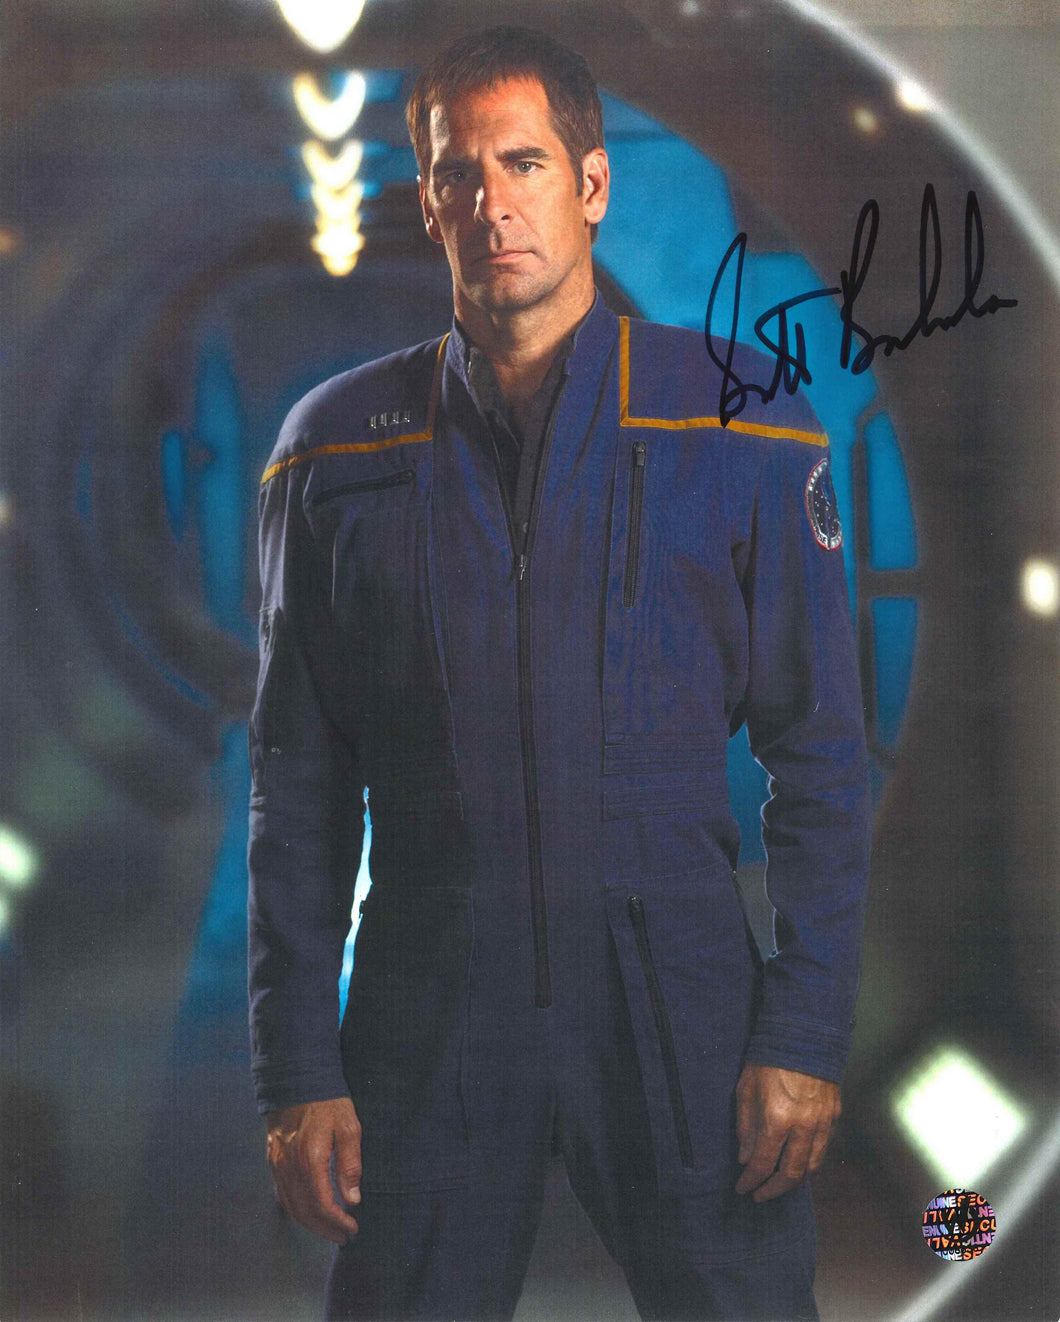 Scott Bakula Signed Star Trek Photo